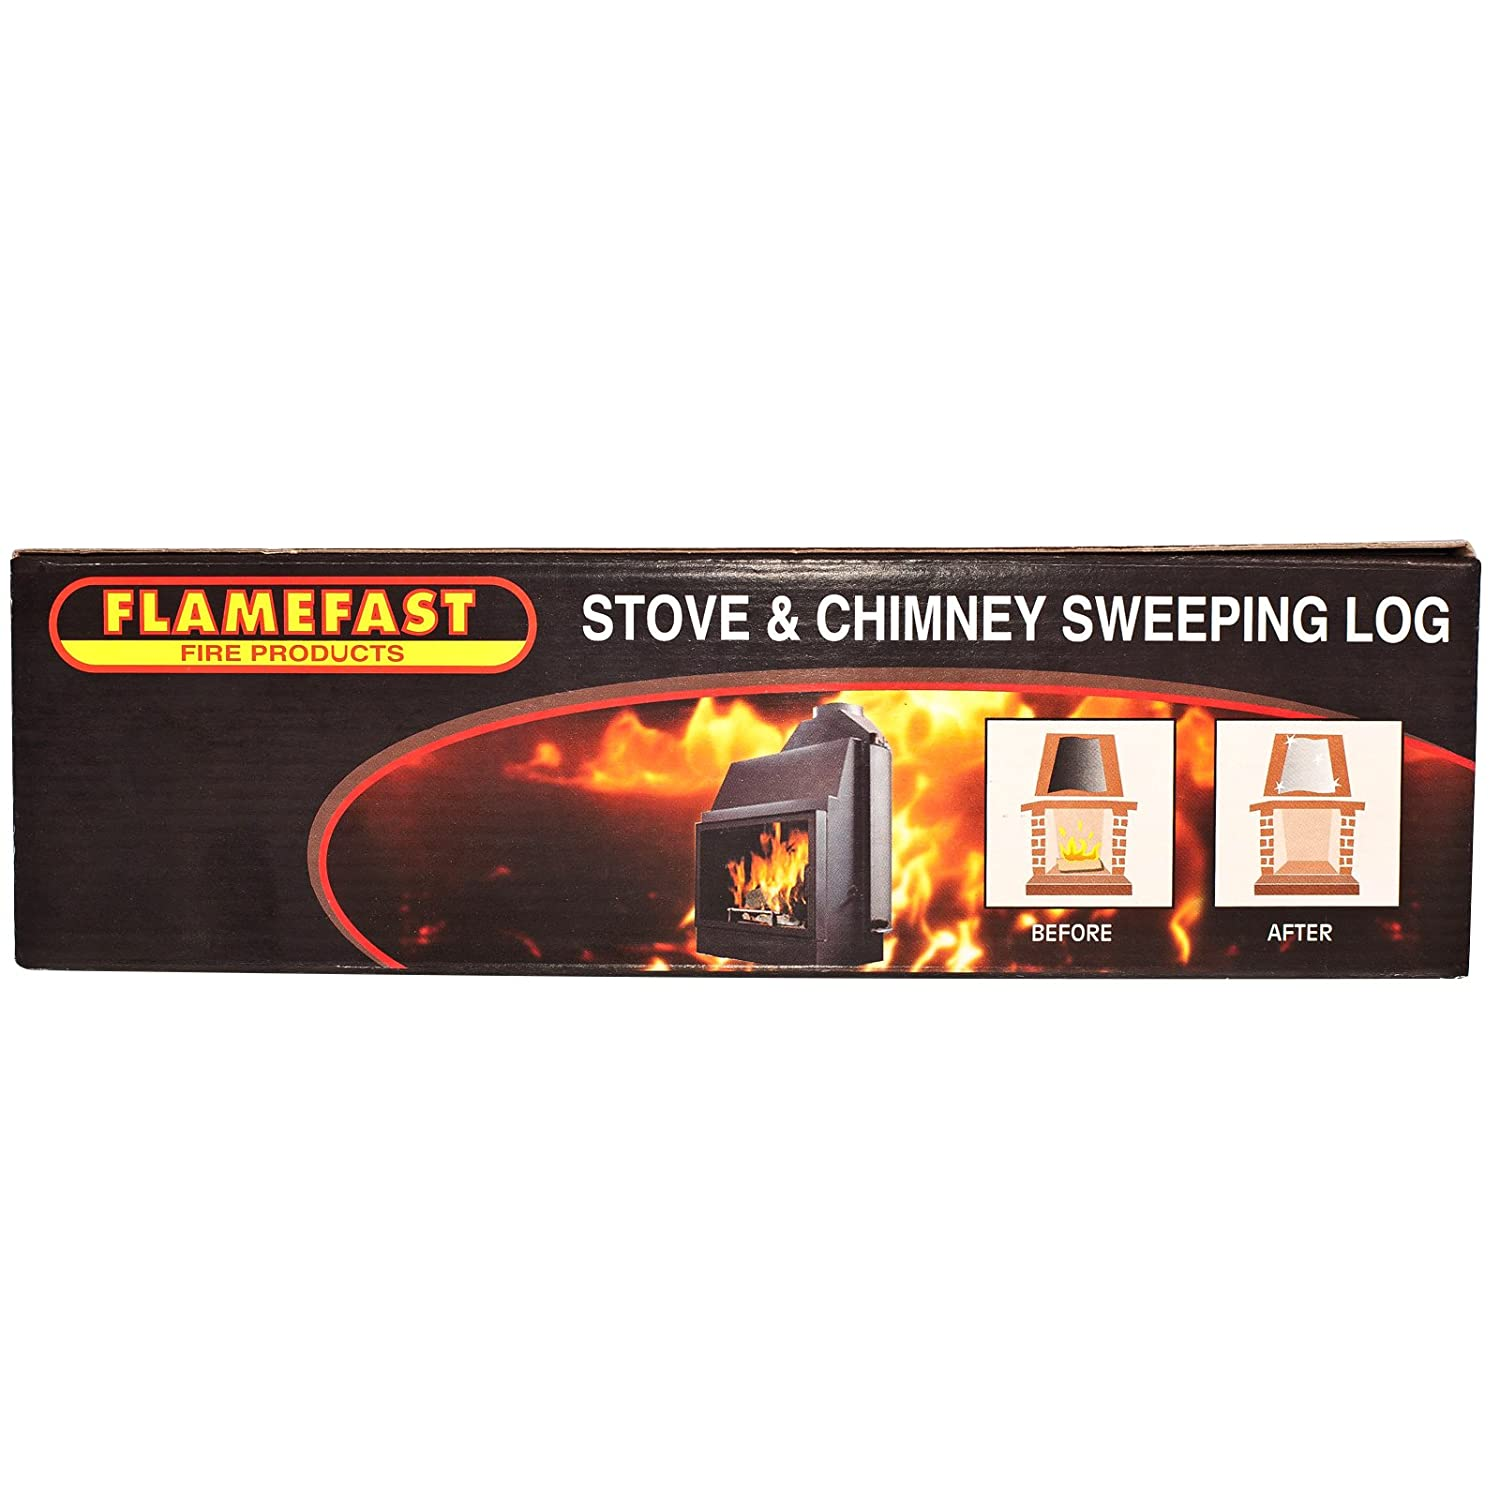 1 X Flamefast Stove & Chimney Sweeping Log Helps to Remove Creosote, Soot and Tar Deposits & Tigerbox Safety Matches